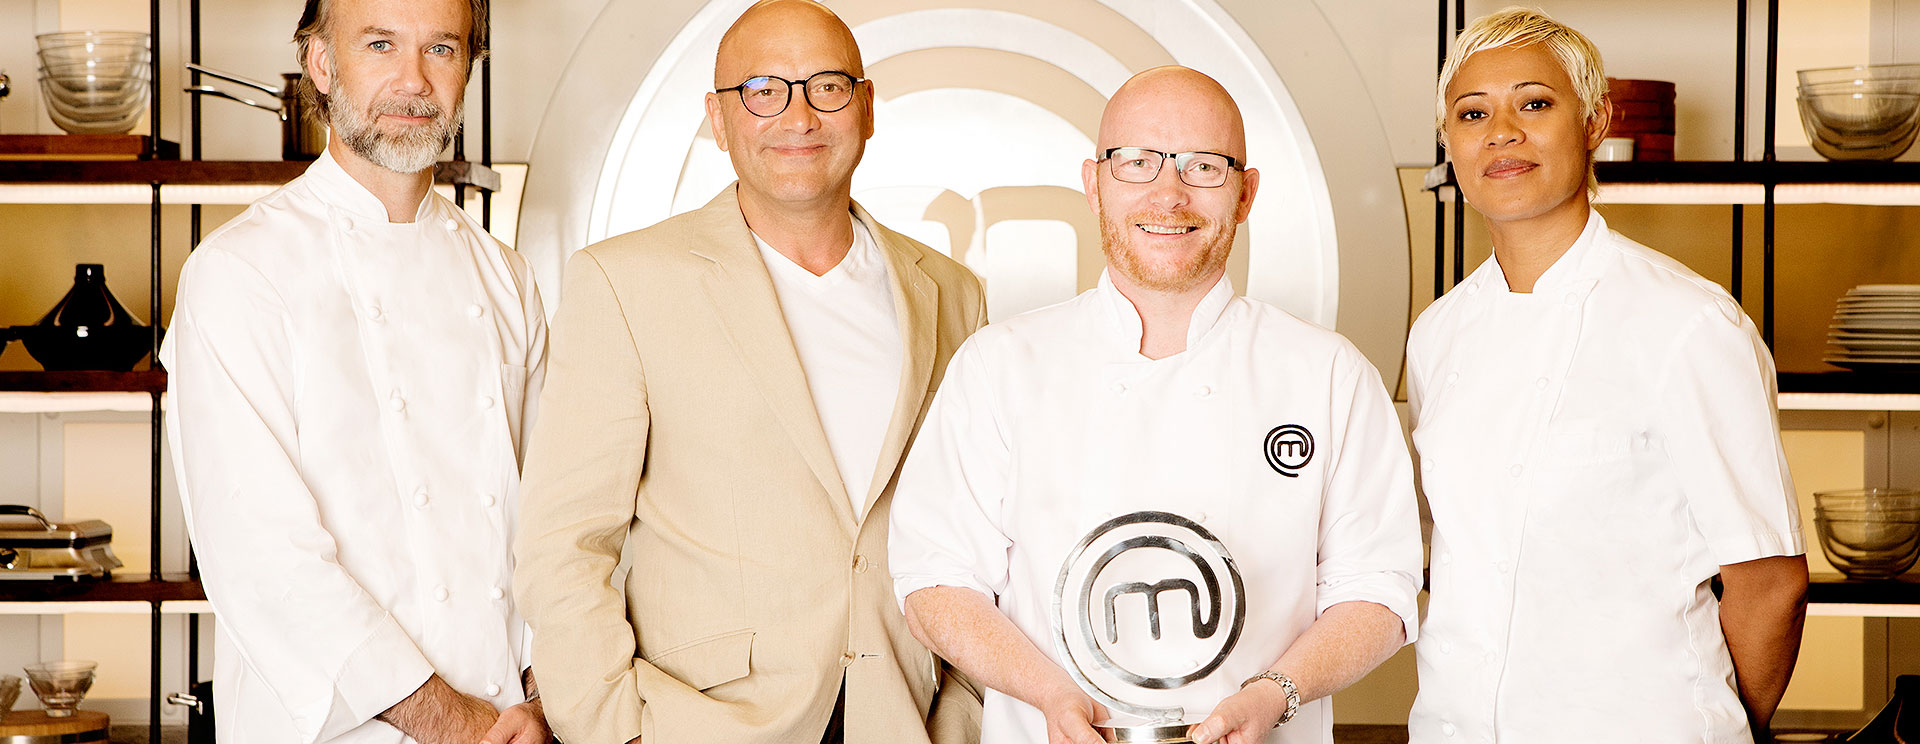 Gary Maclean - Award winning Chef and Winner of MasterChef The Professionals